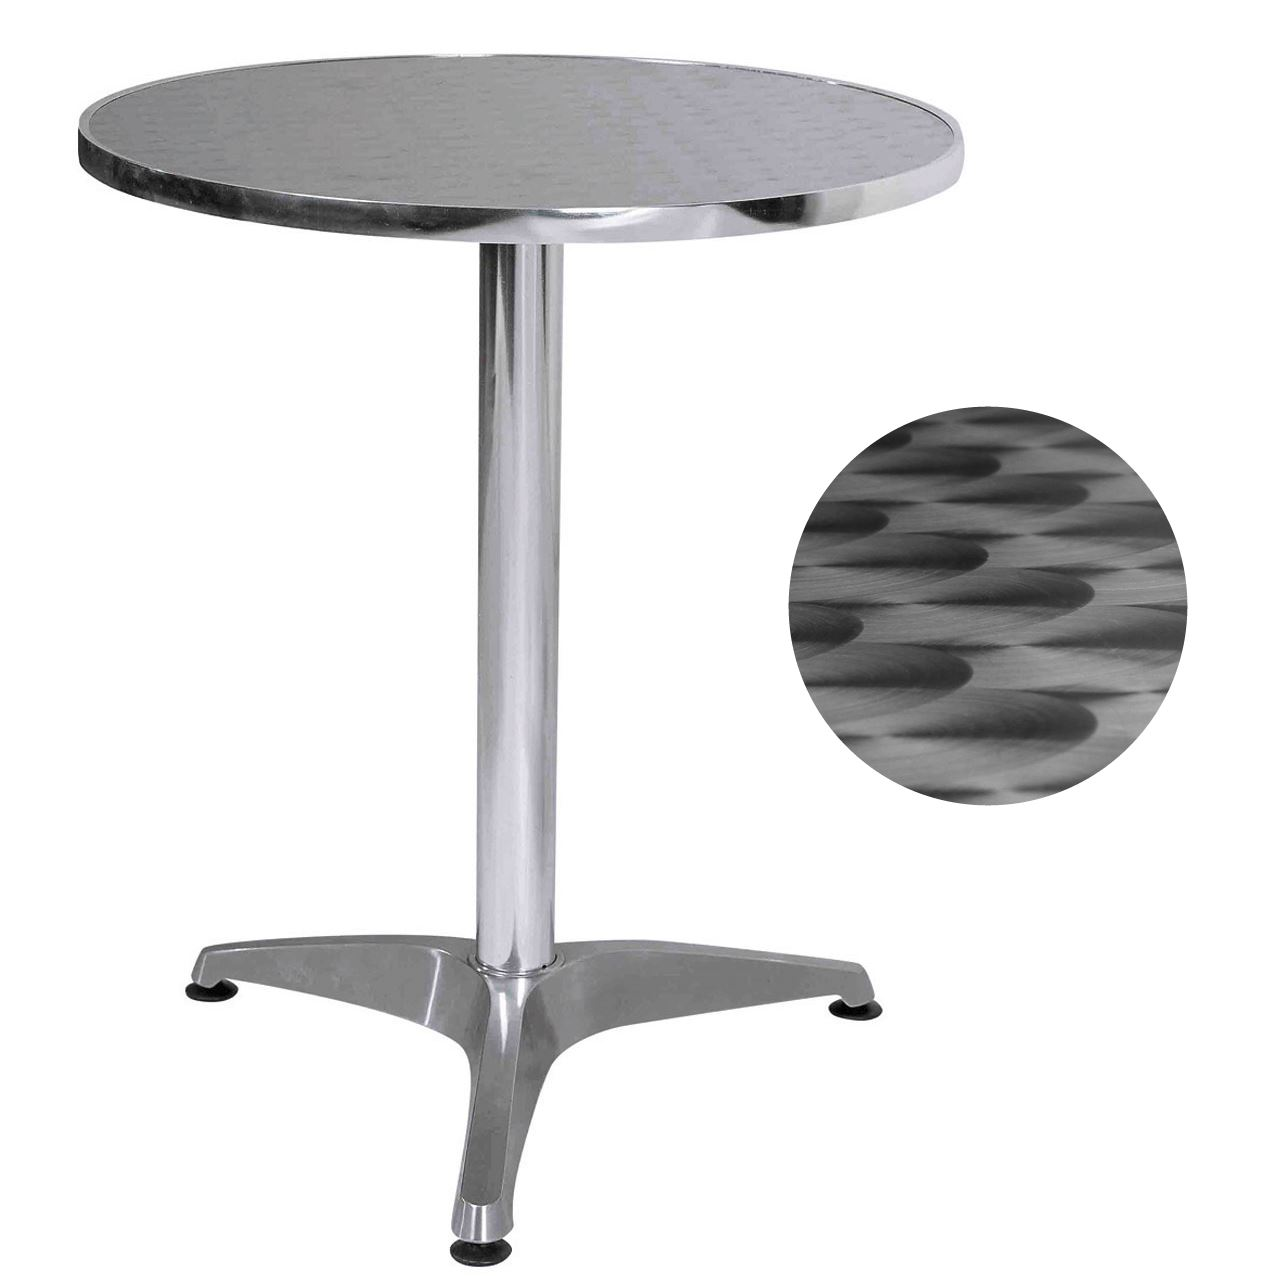 Table Bistrot Aluminium Details About Aluminium Bistro Round Table Pub Cafe Garden Patio Party Table